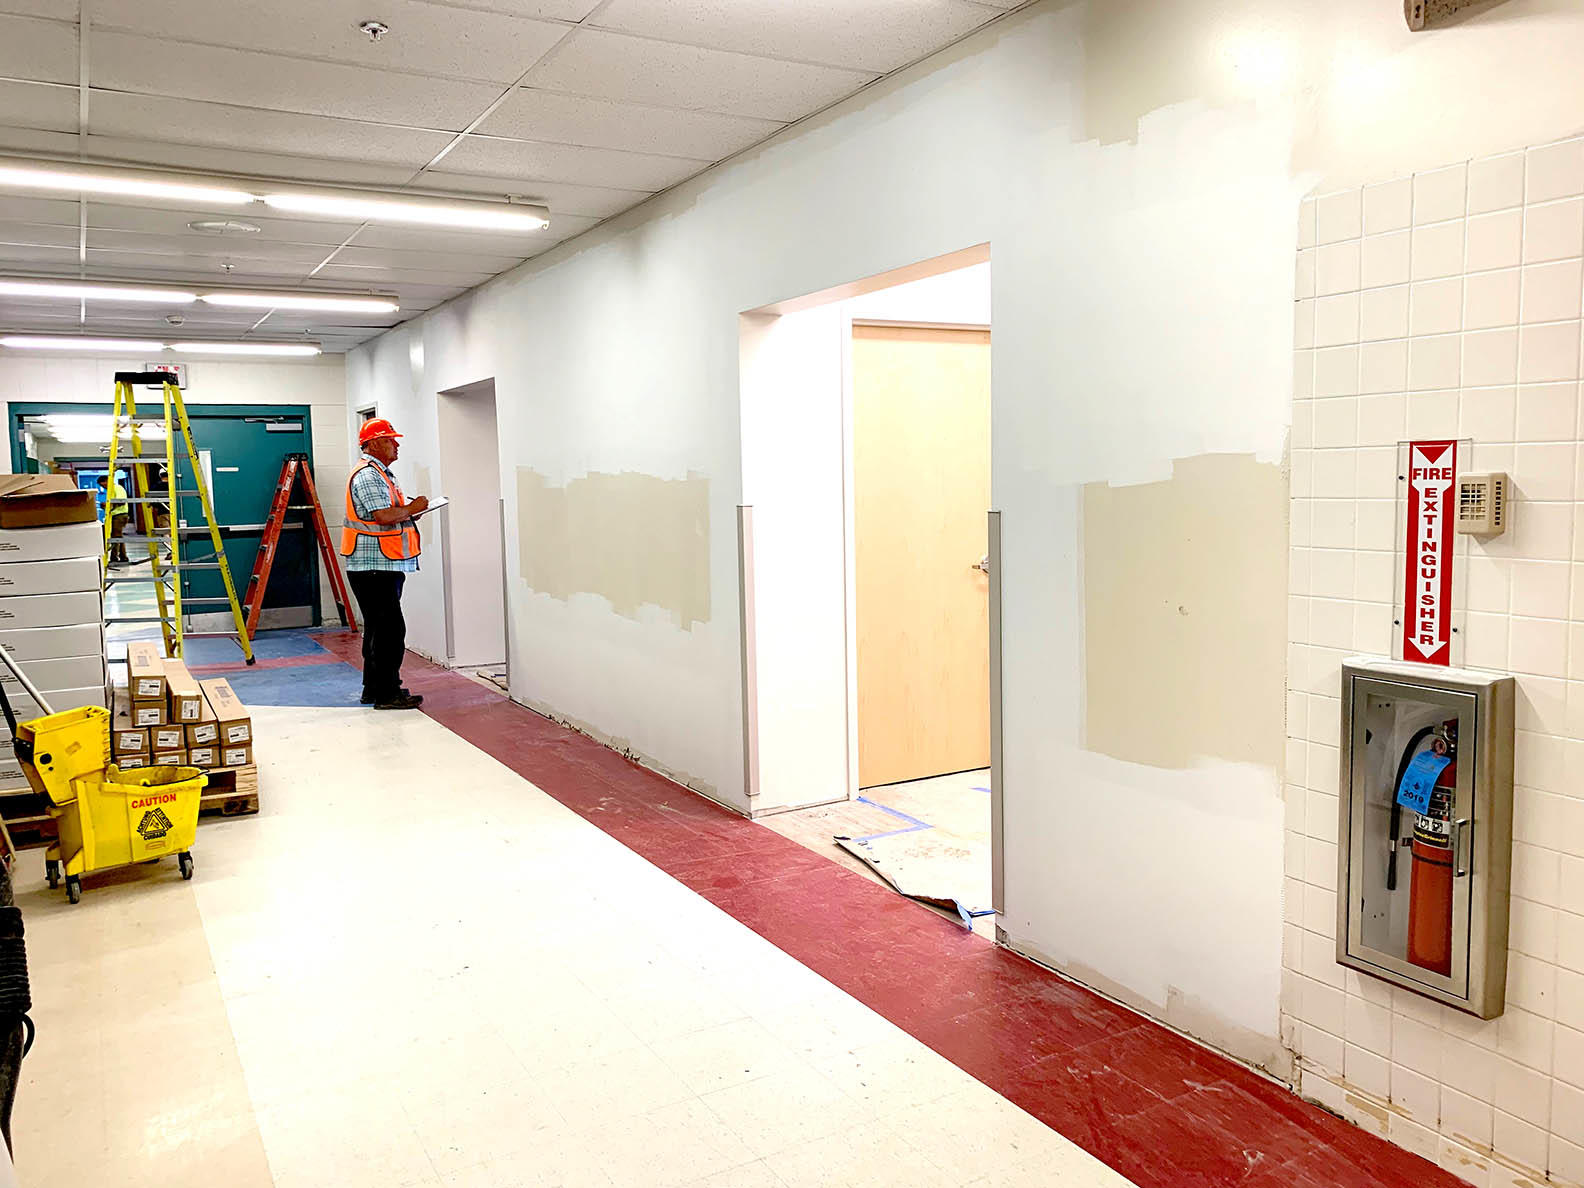 Photo of construction in hall looking into offices.